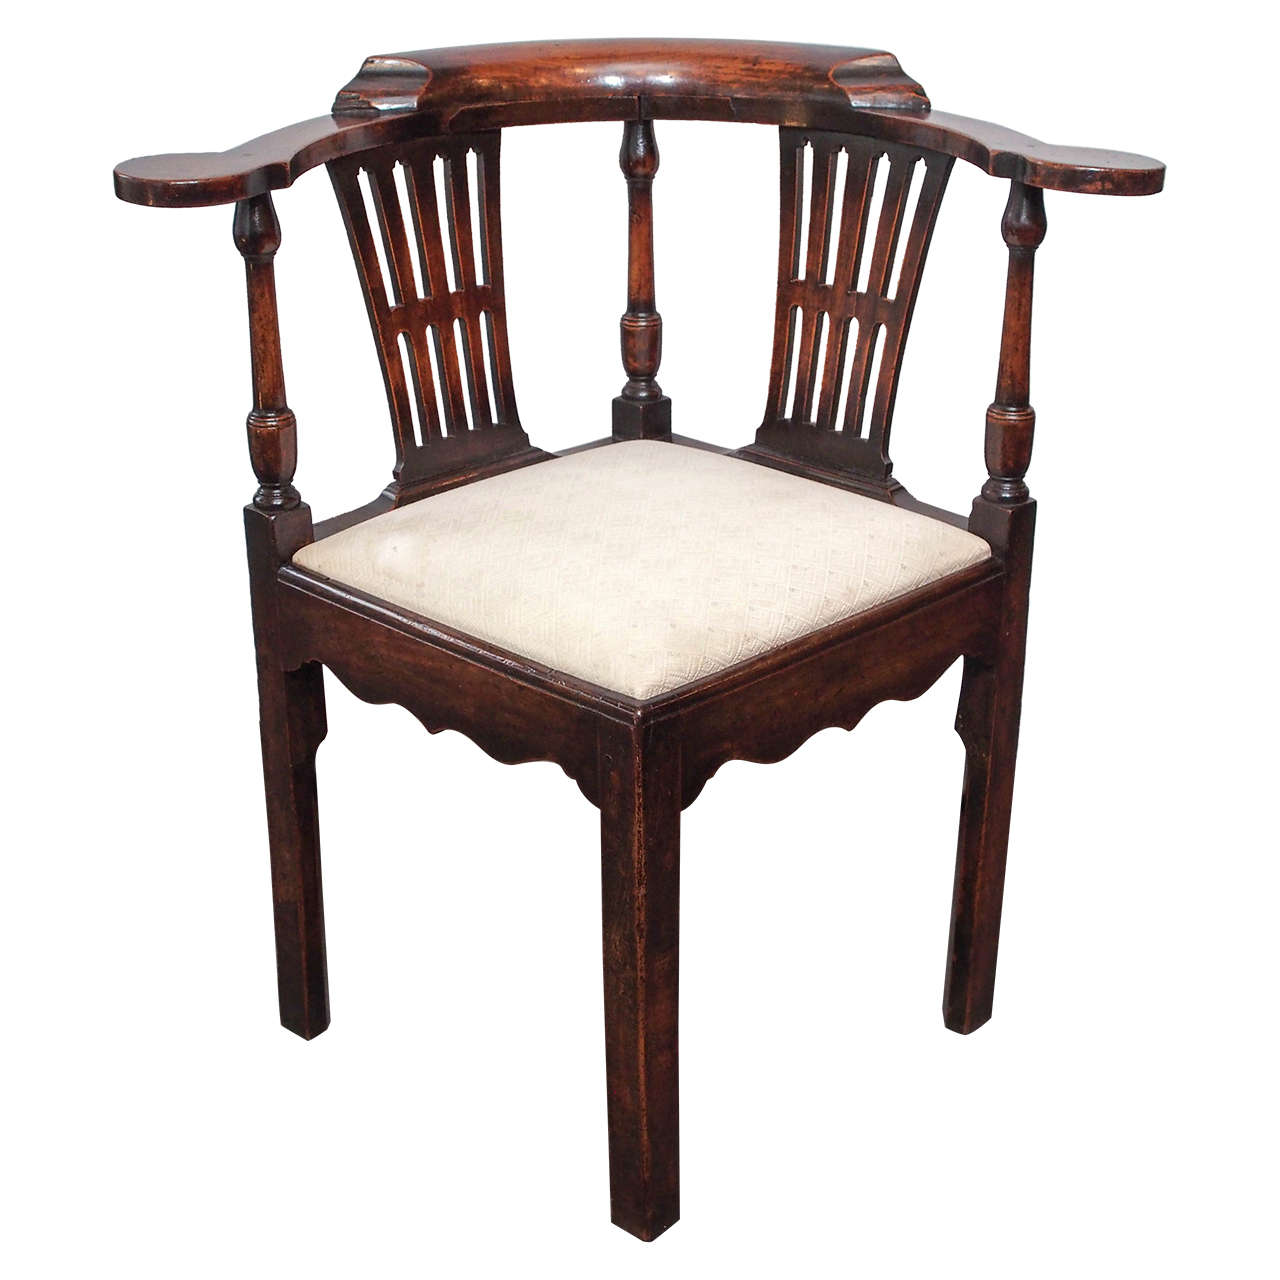 Antique english corner chair at 1stdibs for Antique desk chair